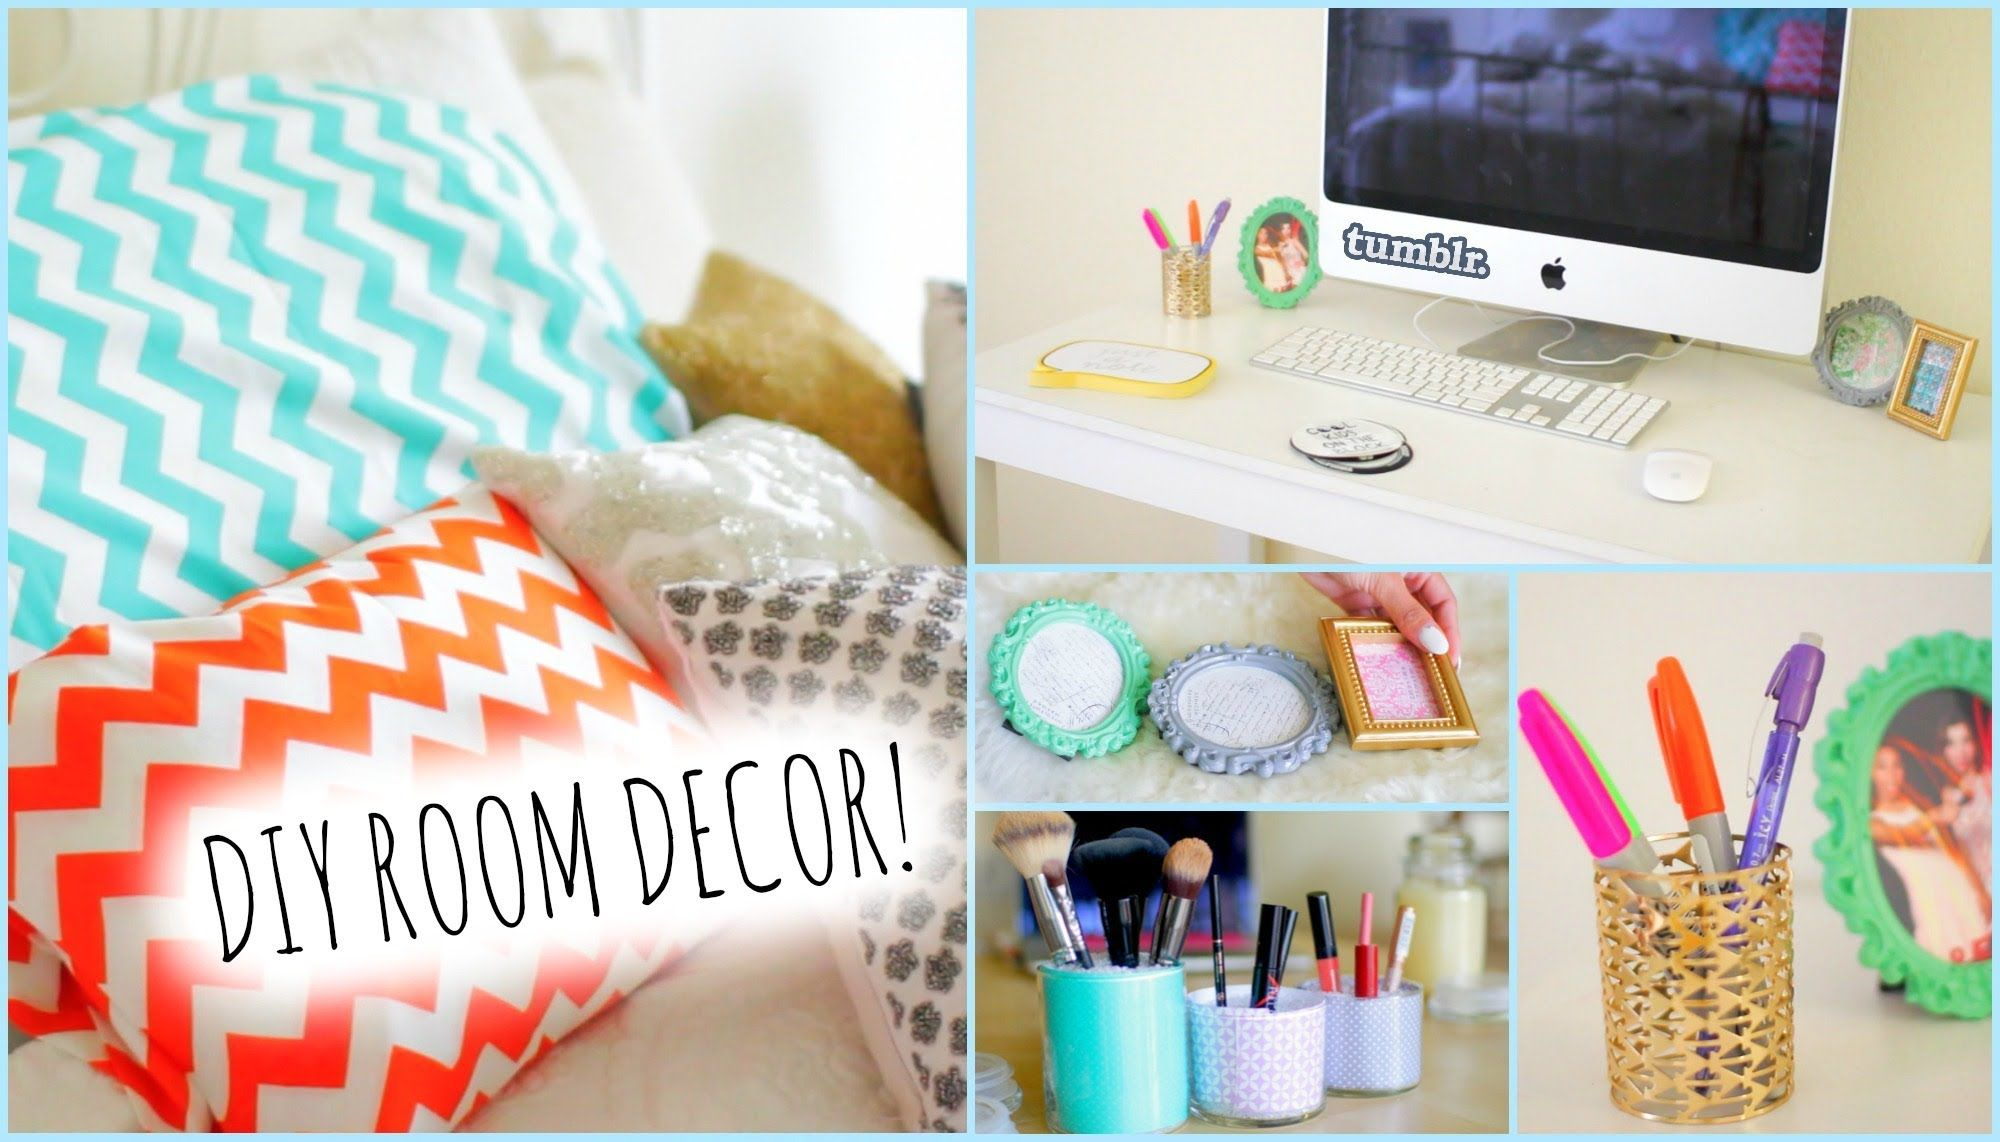 Teen bedroom diy decorating ideas - Diy Room Decorations For Cheap How To Stay Organized